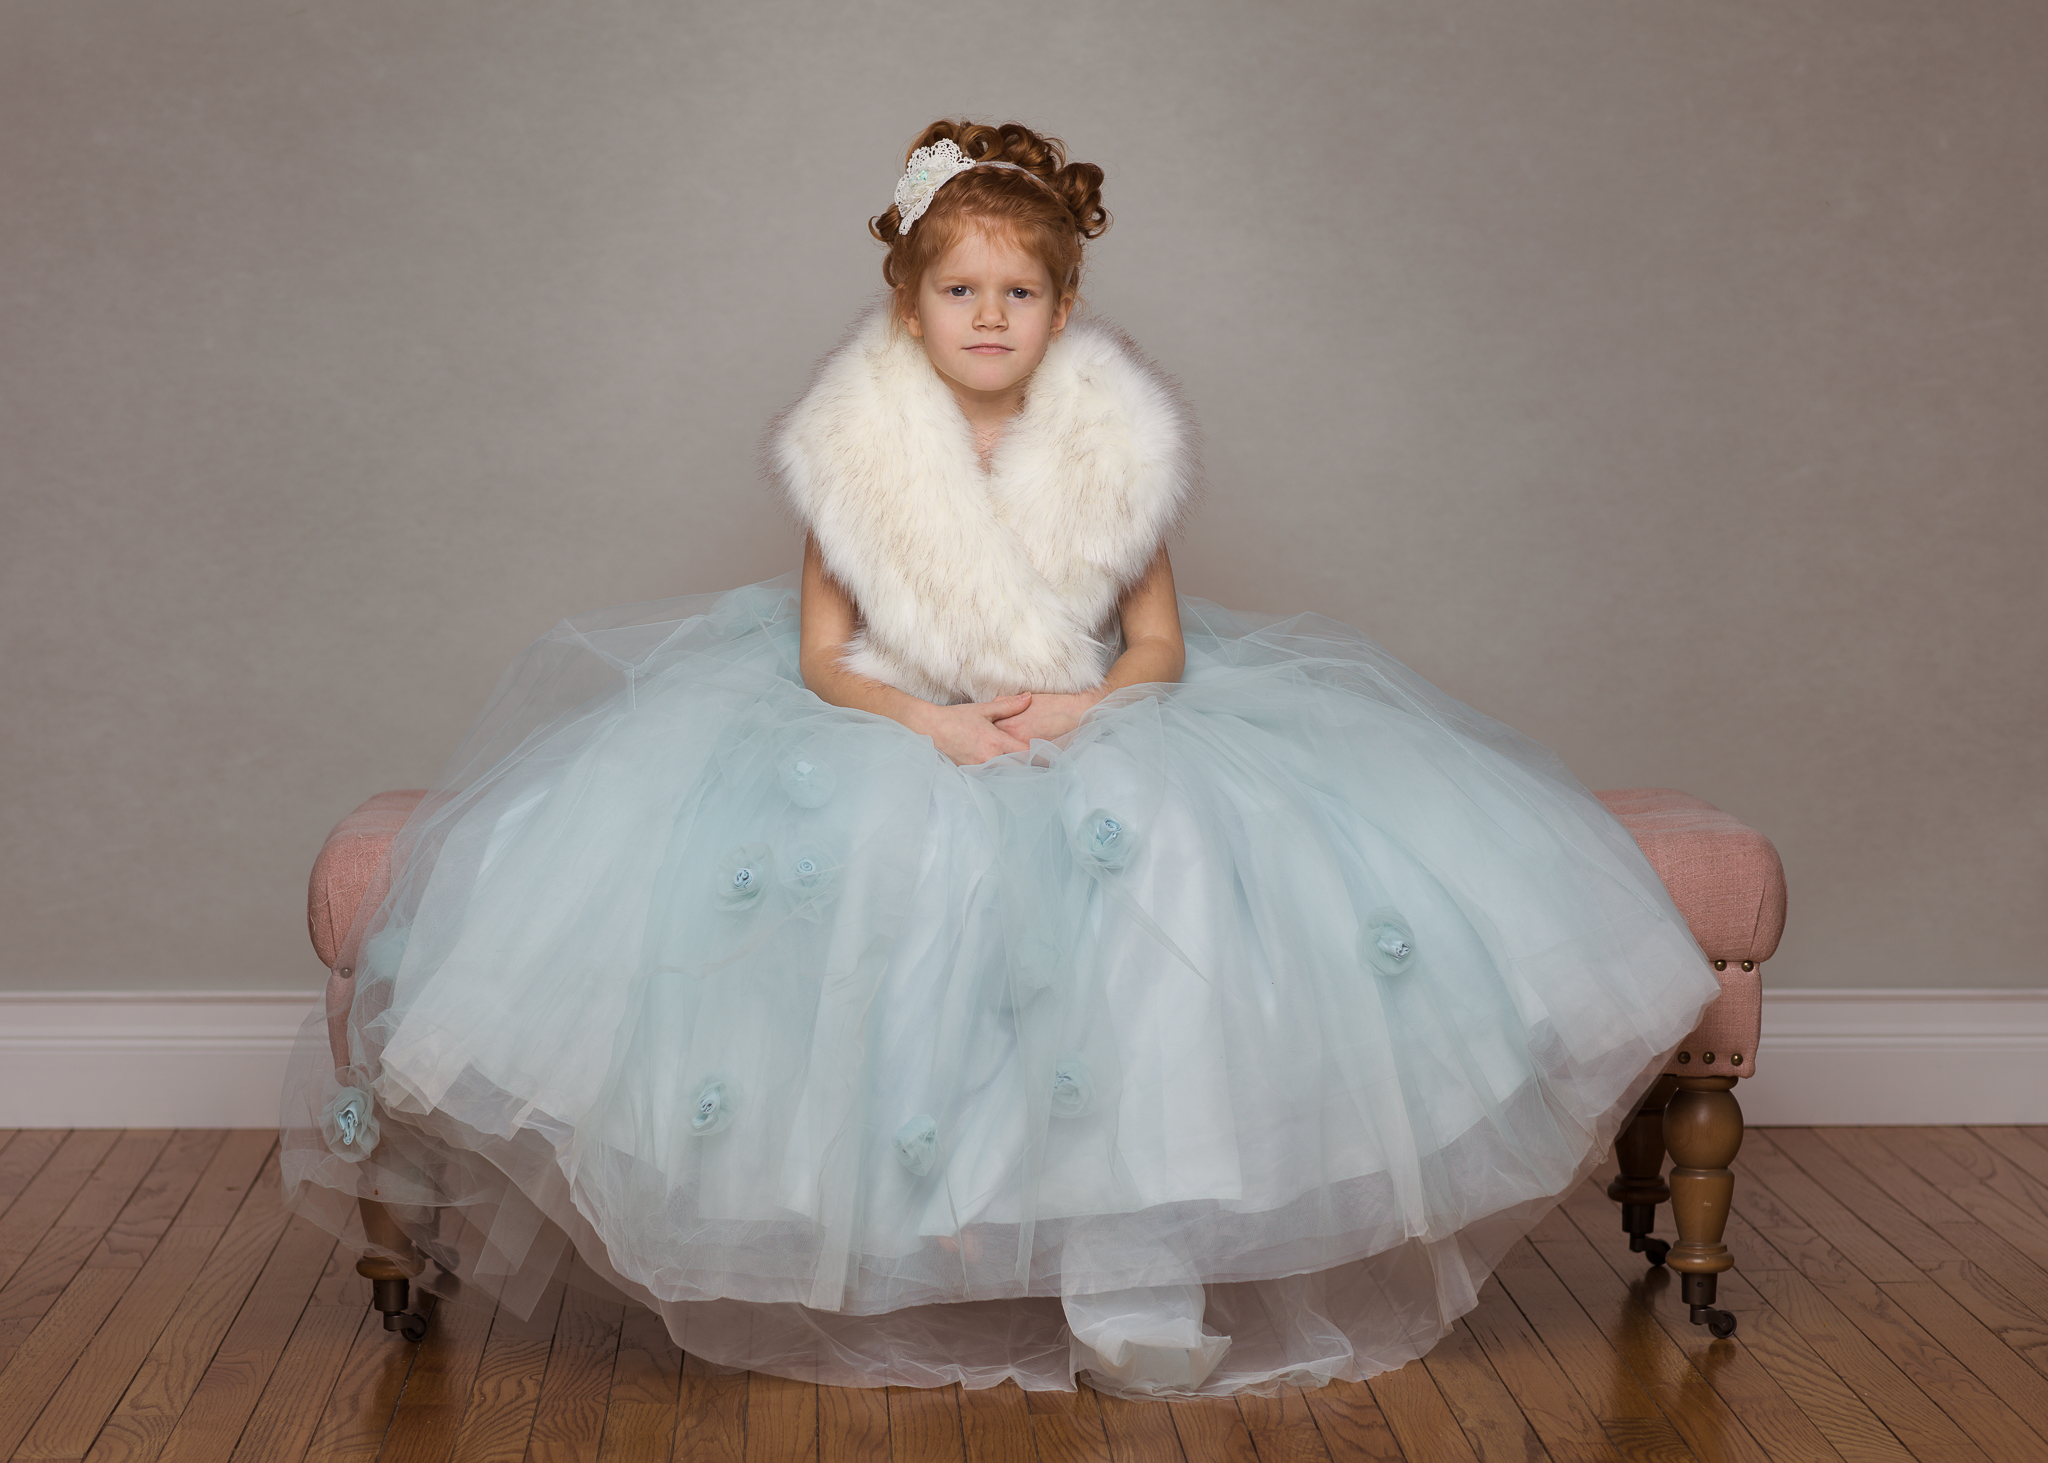 Classic-Couture-Moody-Blues-Frock-Dollcake-Blue-Princess-Dress-Pink-Bench-Settee-Texture-Portrait-Na